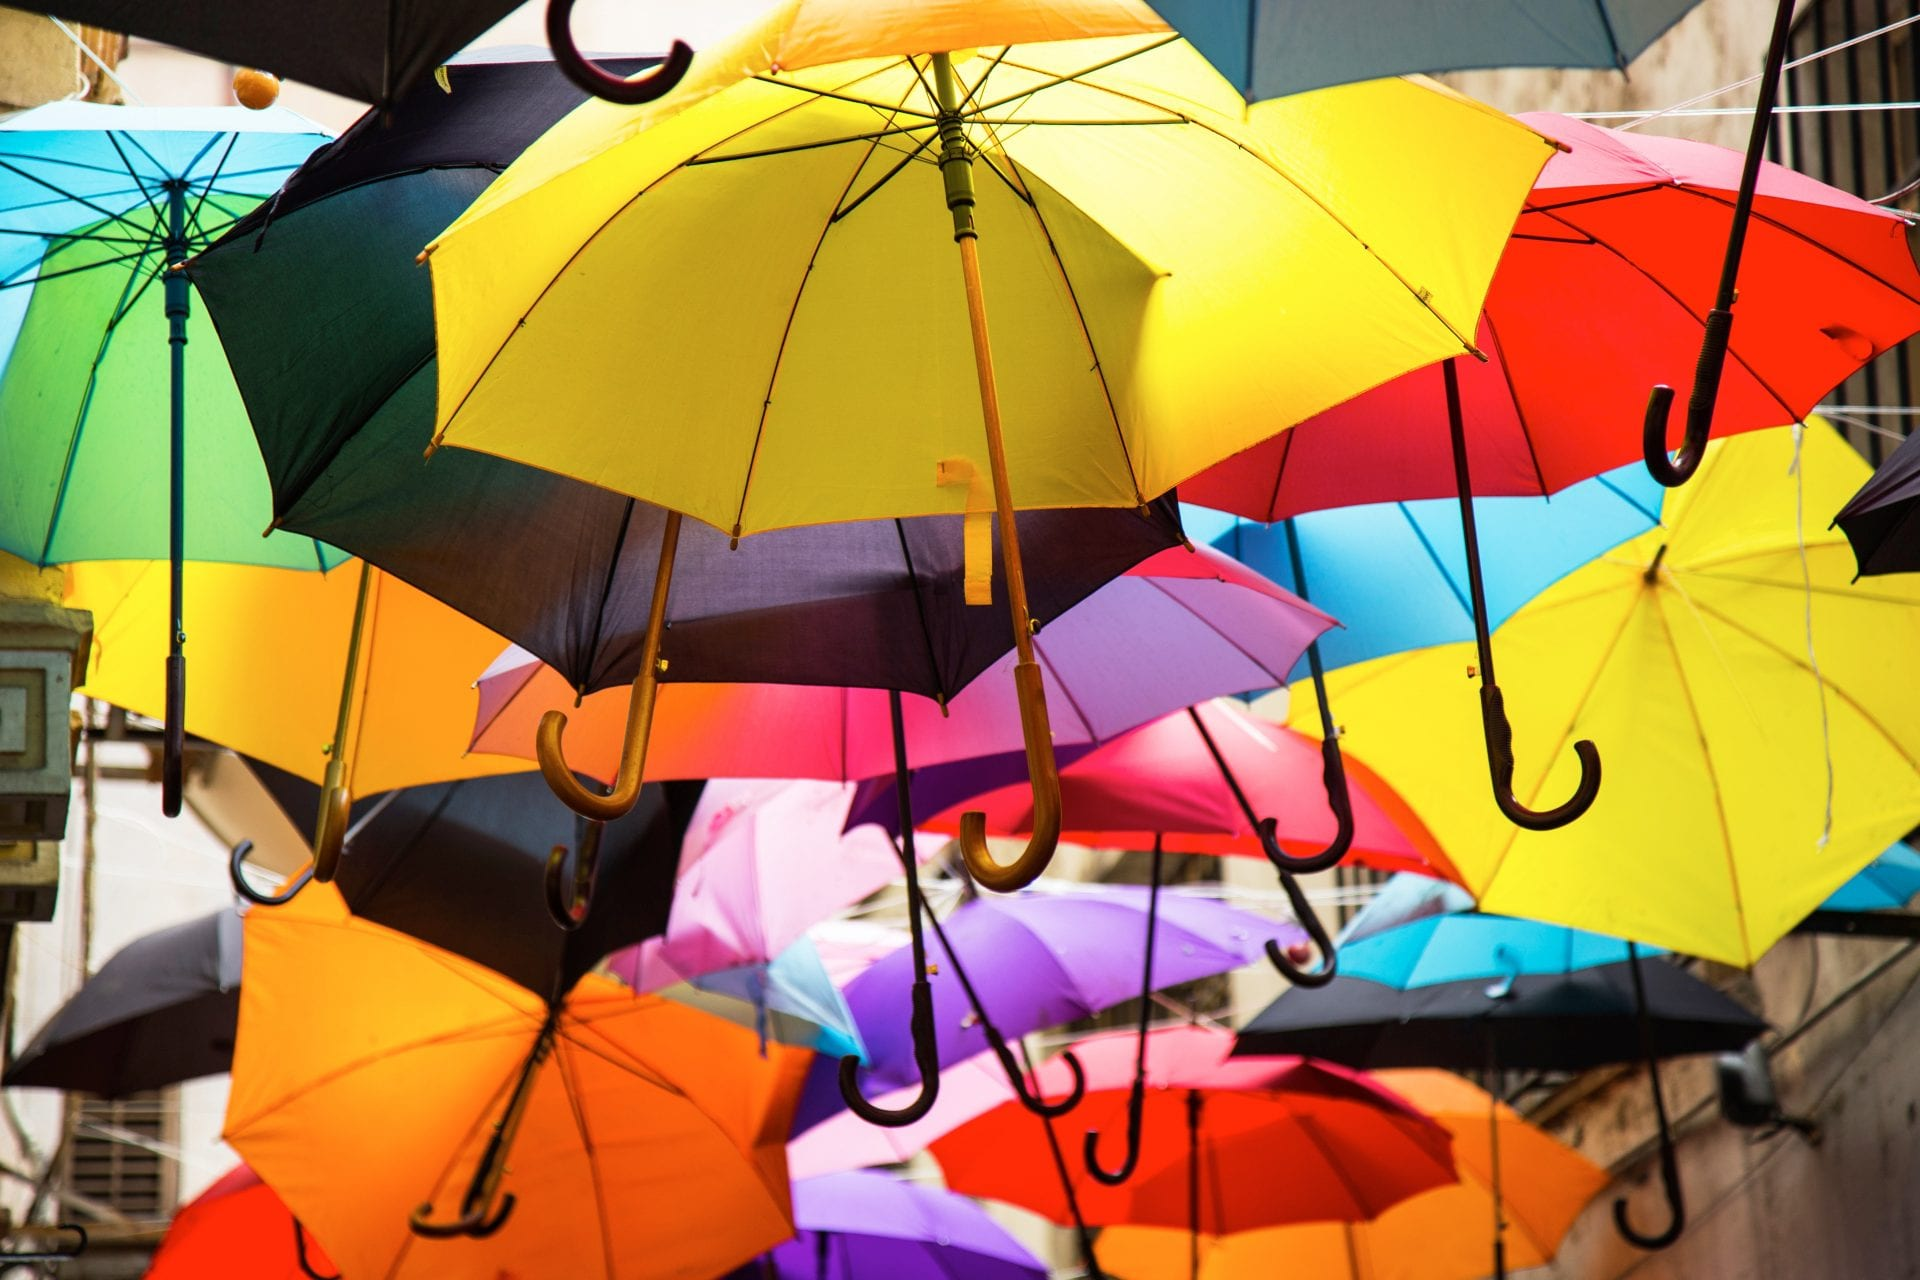 Umbrella Protection - From Engin Akyurt in Pexels